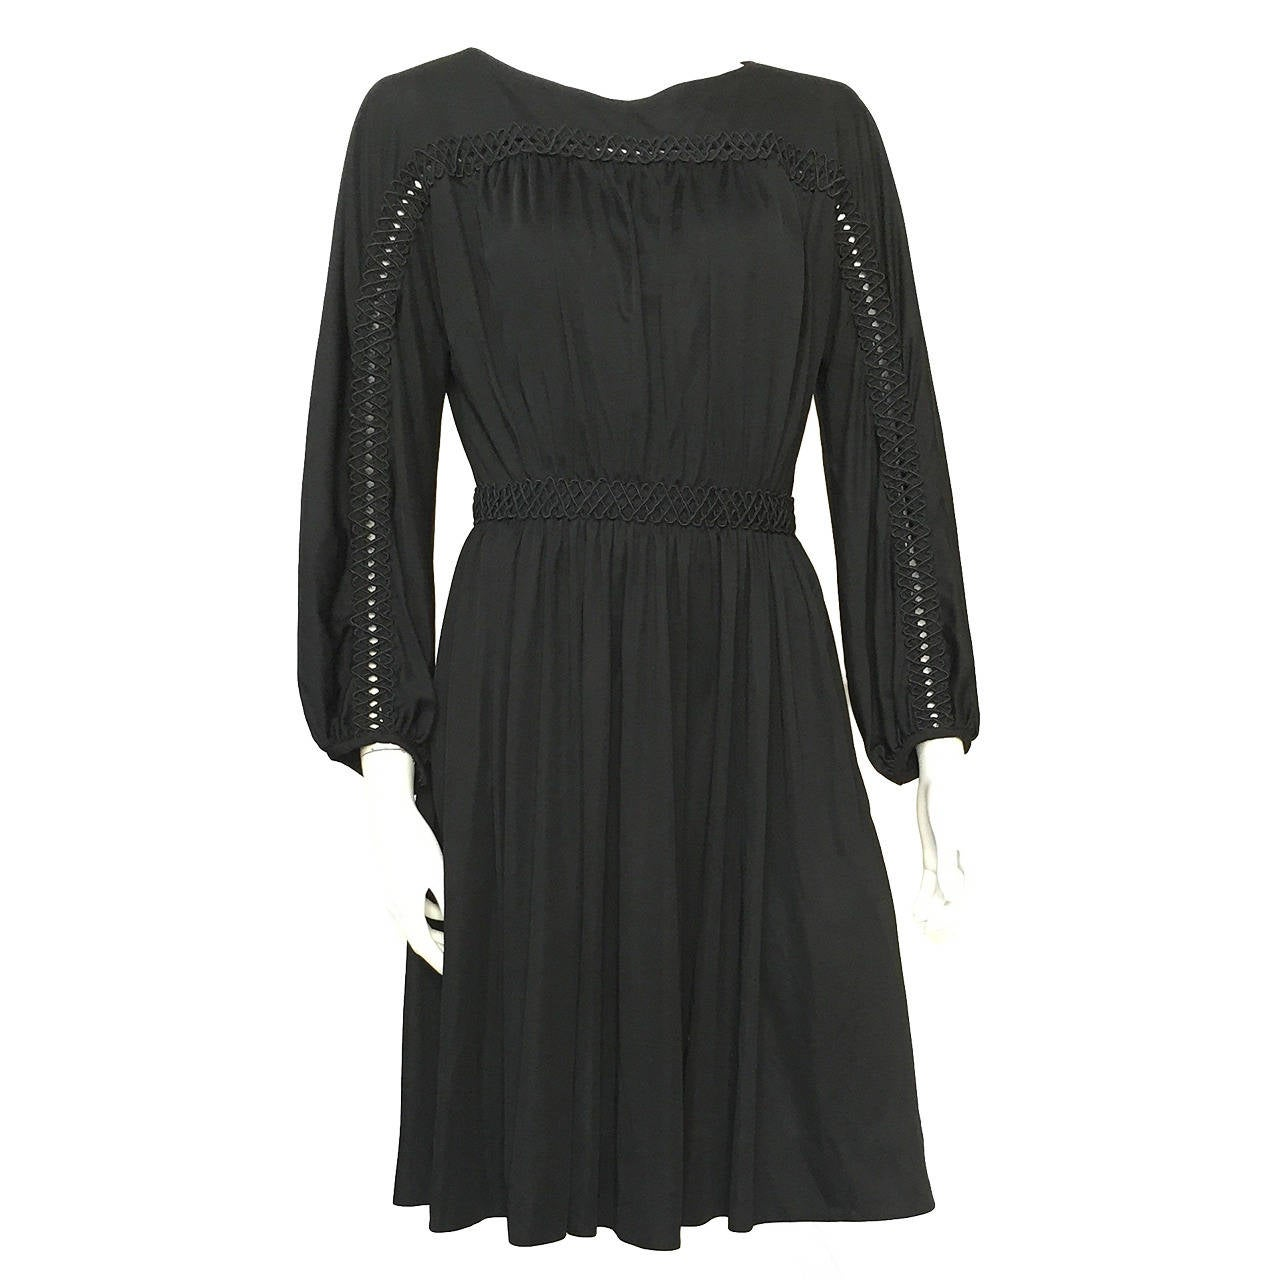 Donald Brooks 70s black dress with pockets size 6.